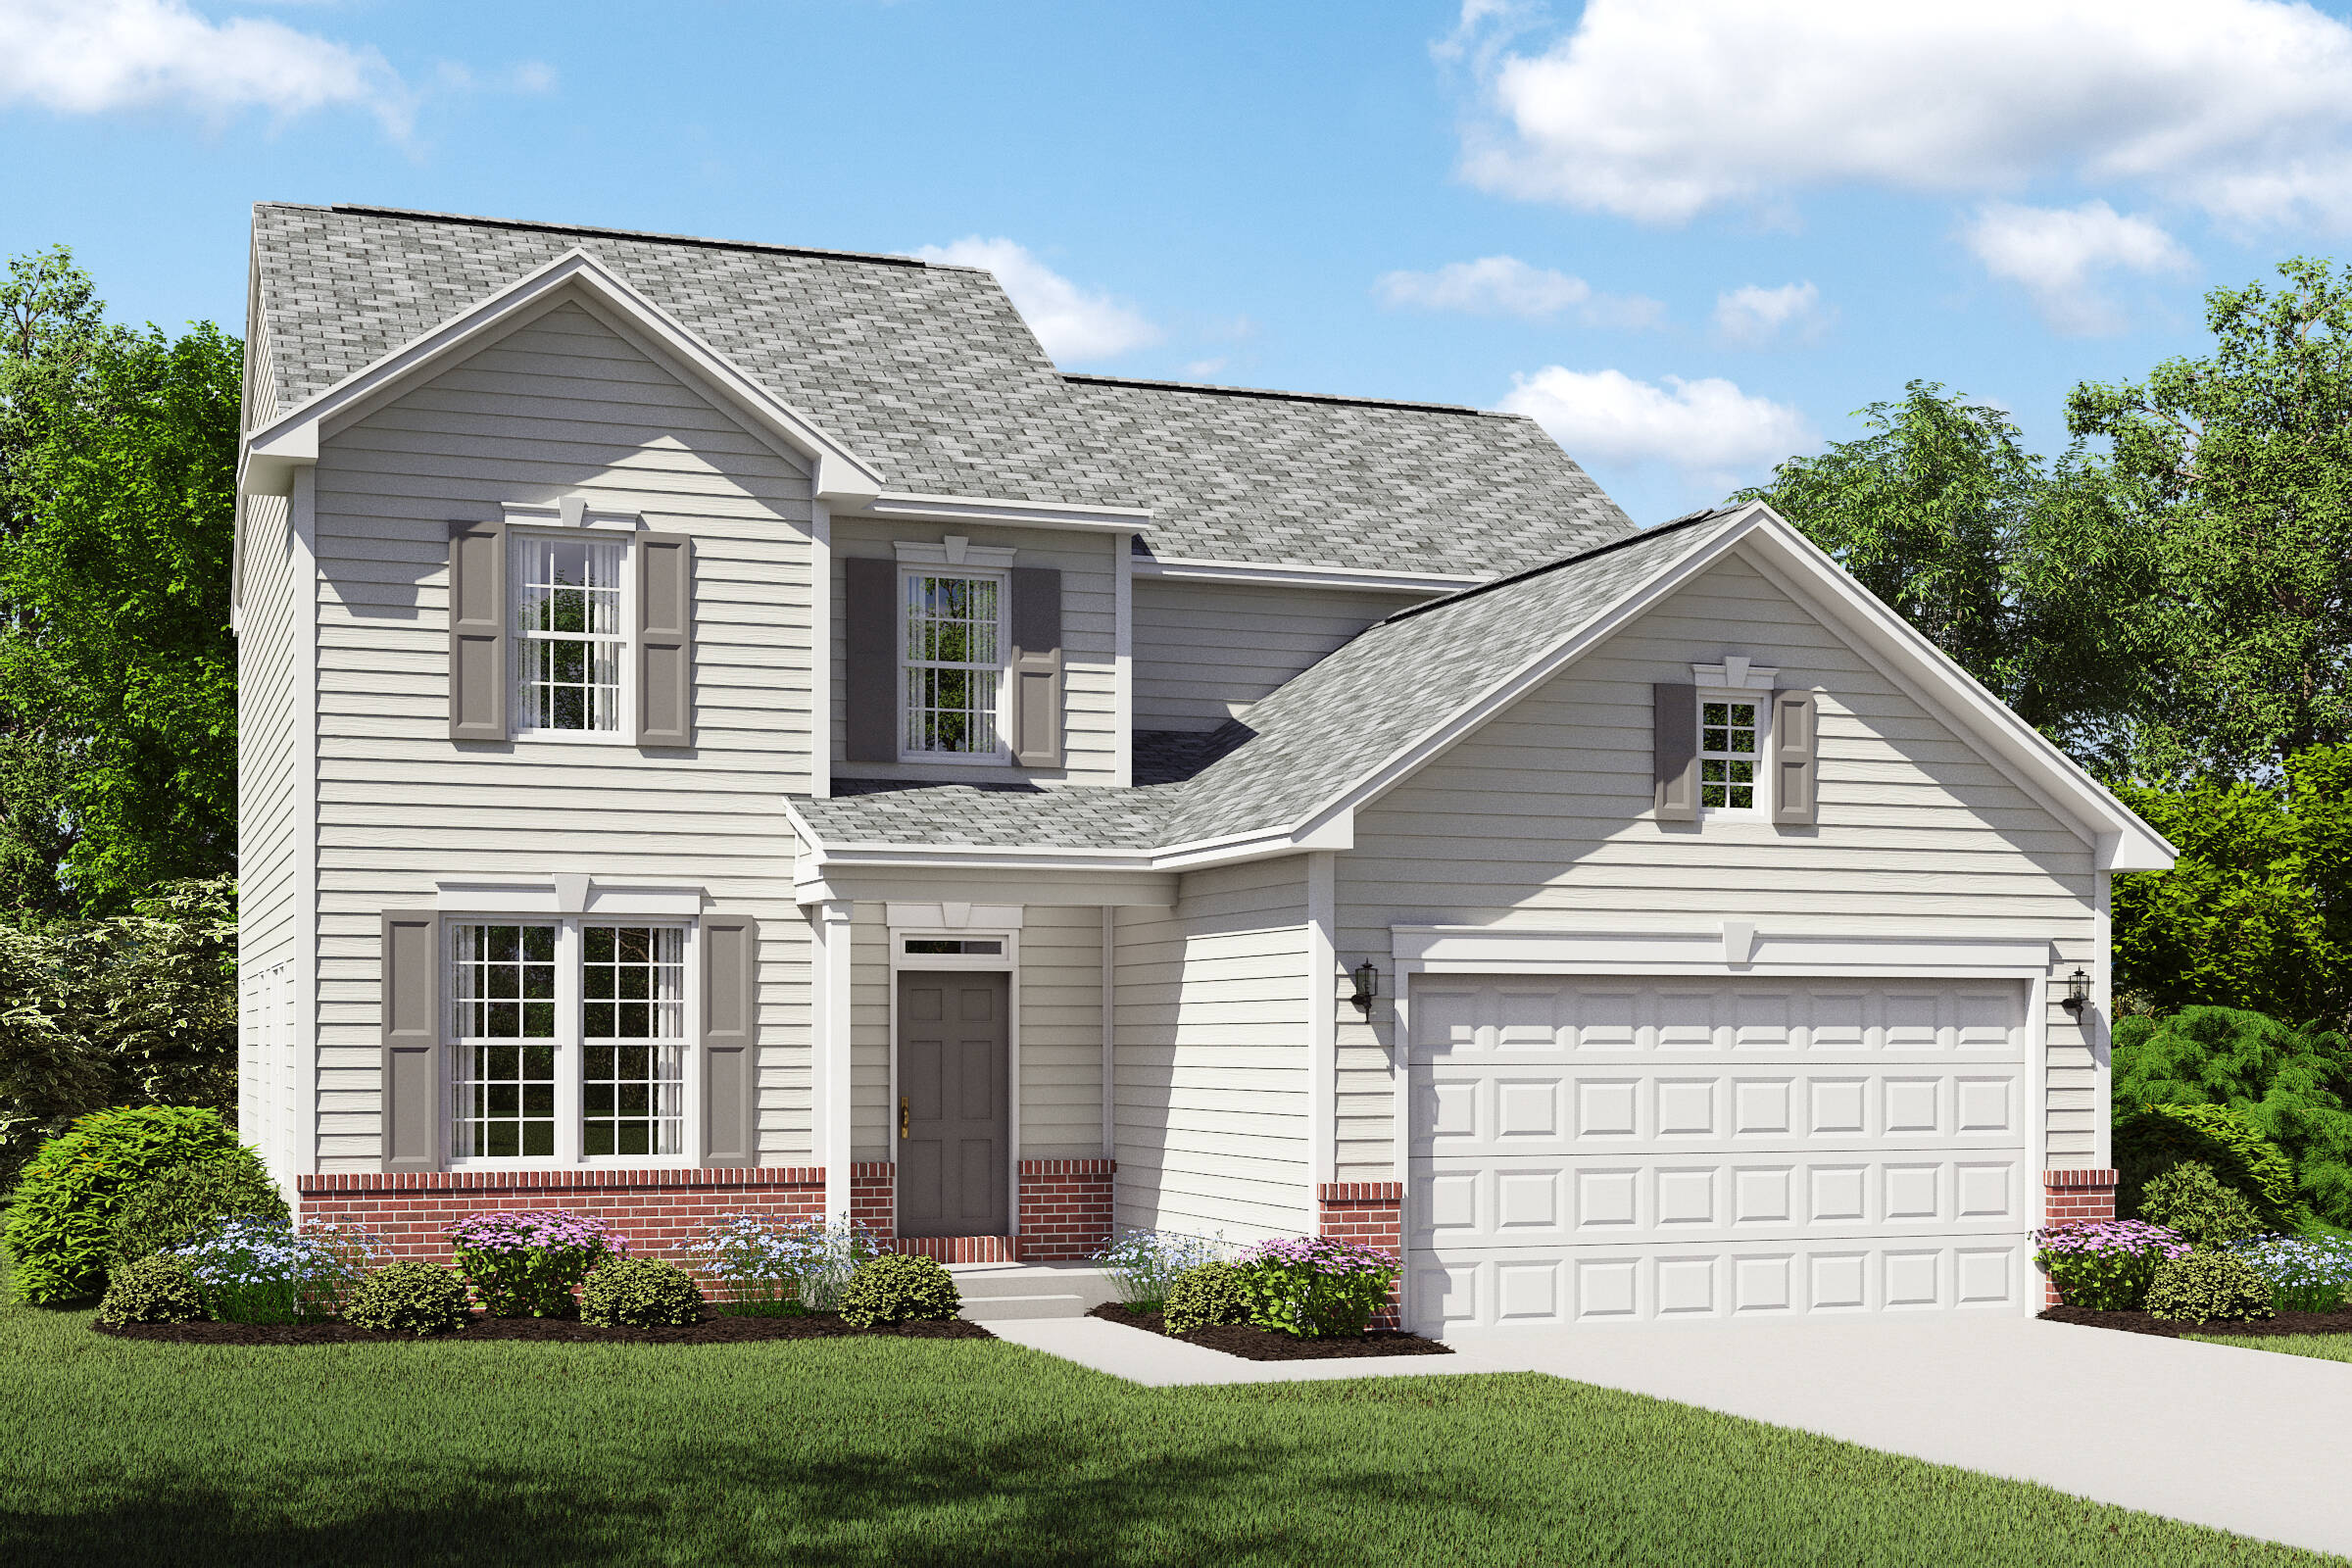 irving bb homes for sales northeast ohio